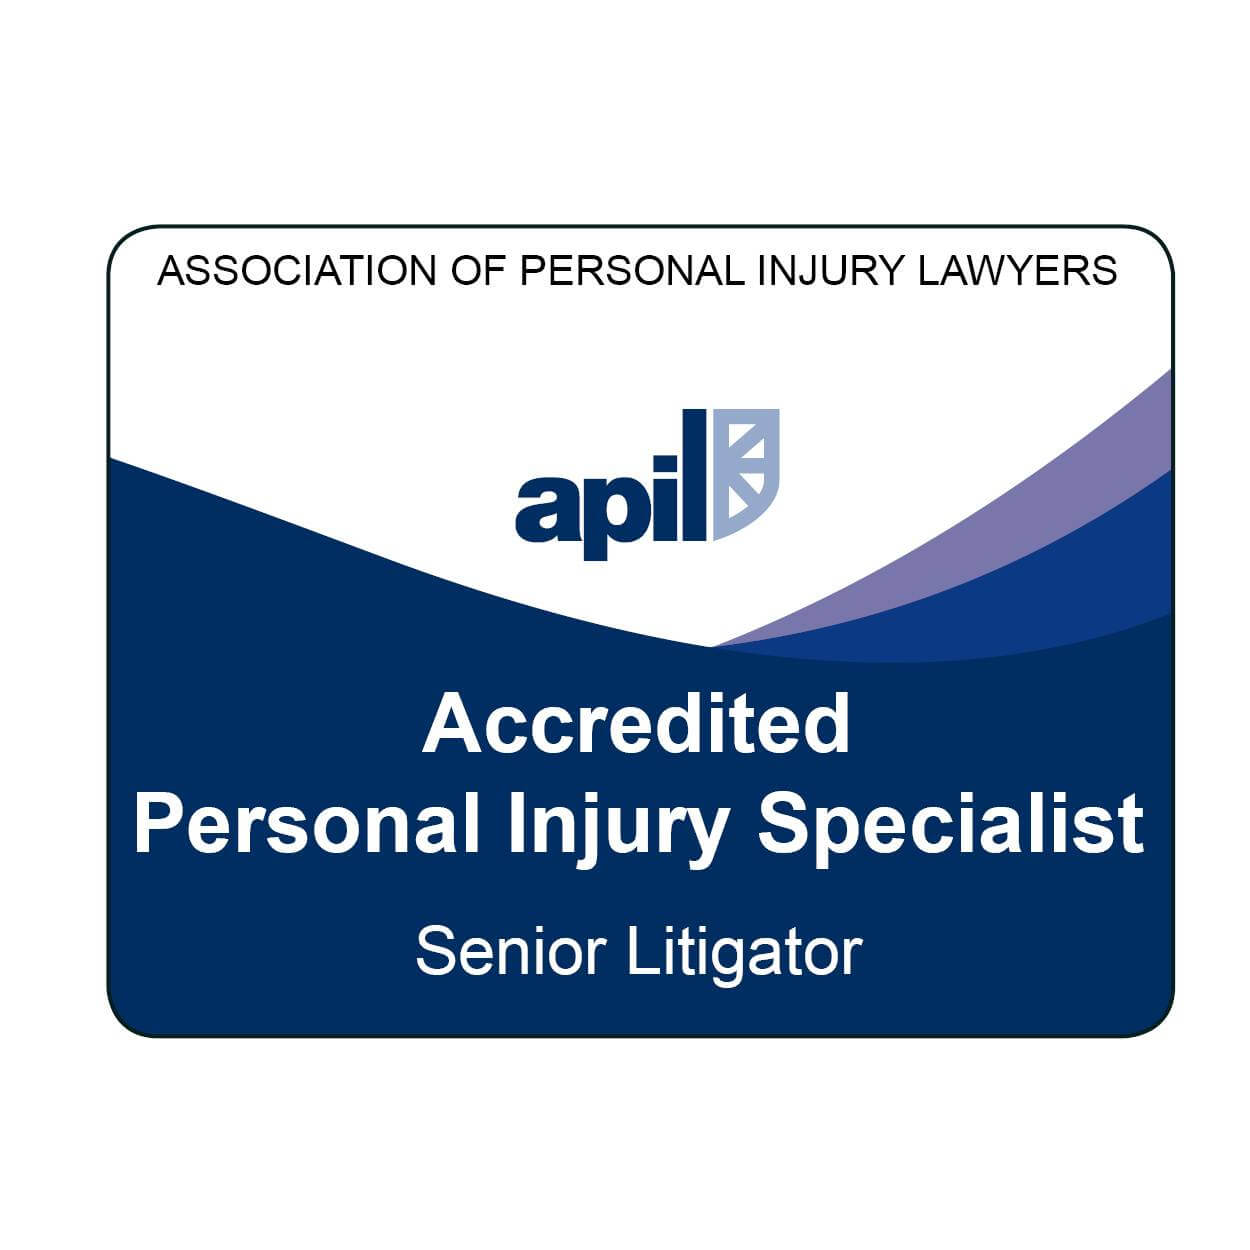 Who are the Association of Personal Injury Lawyers?